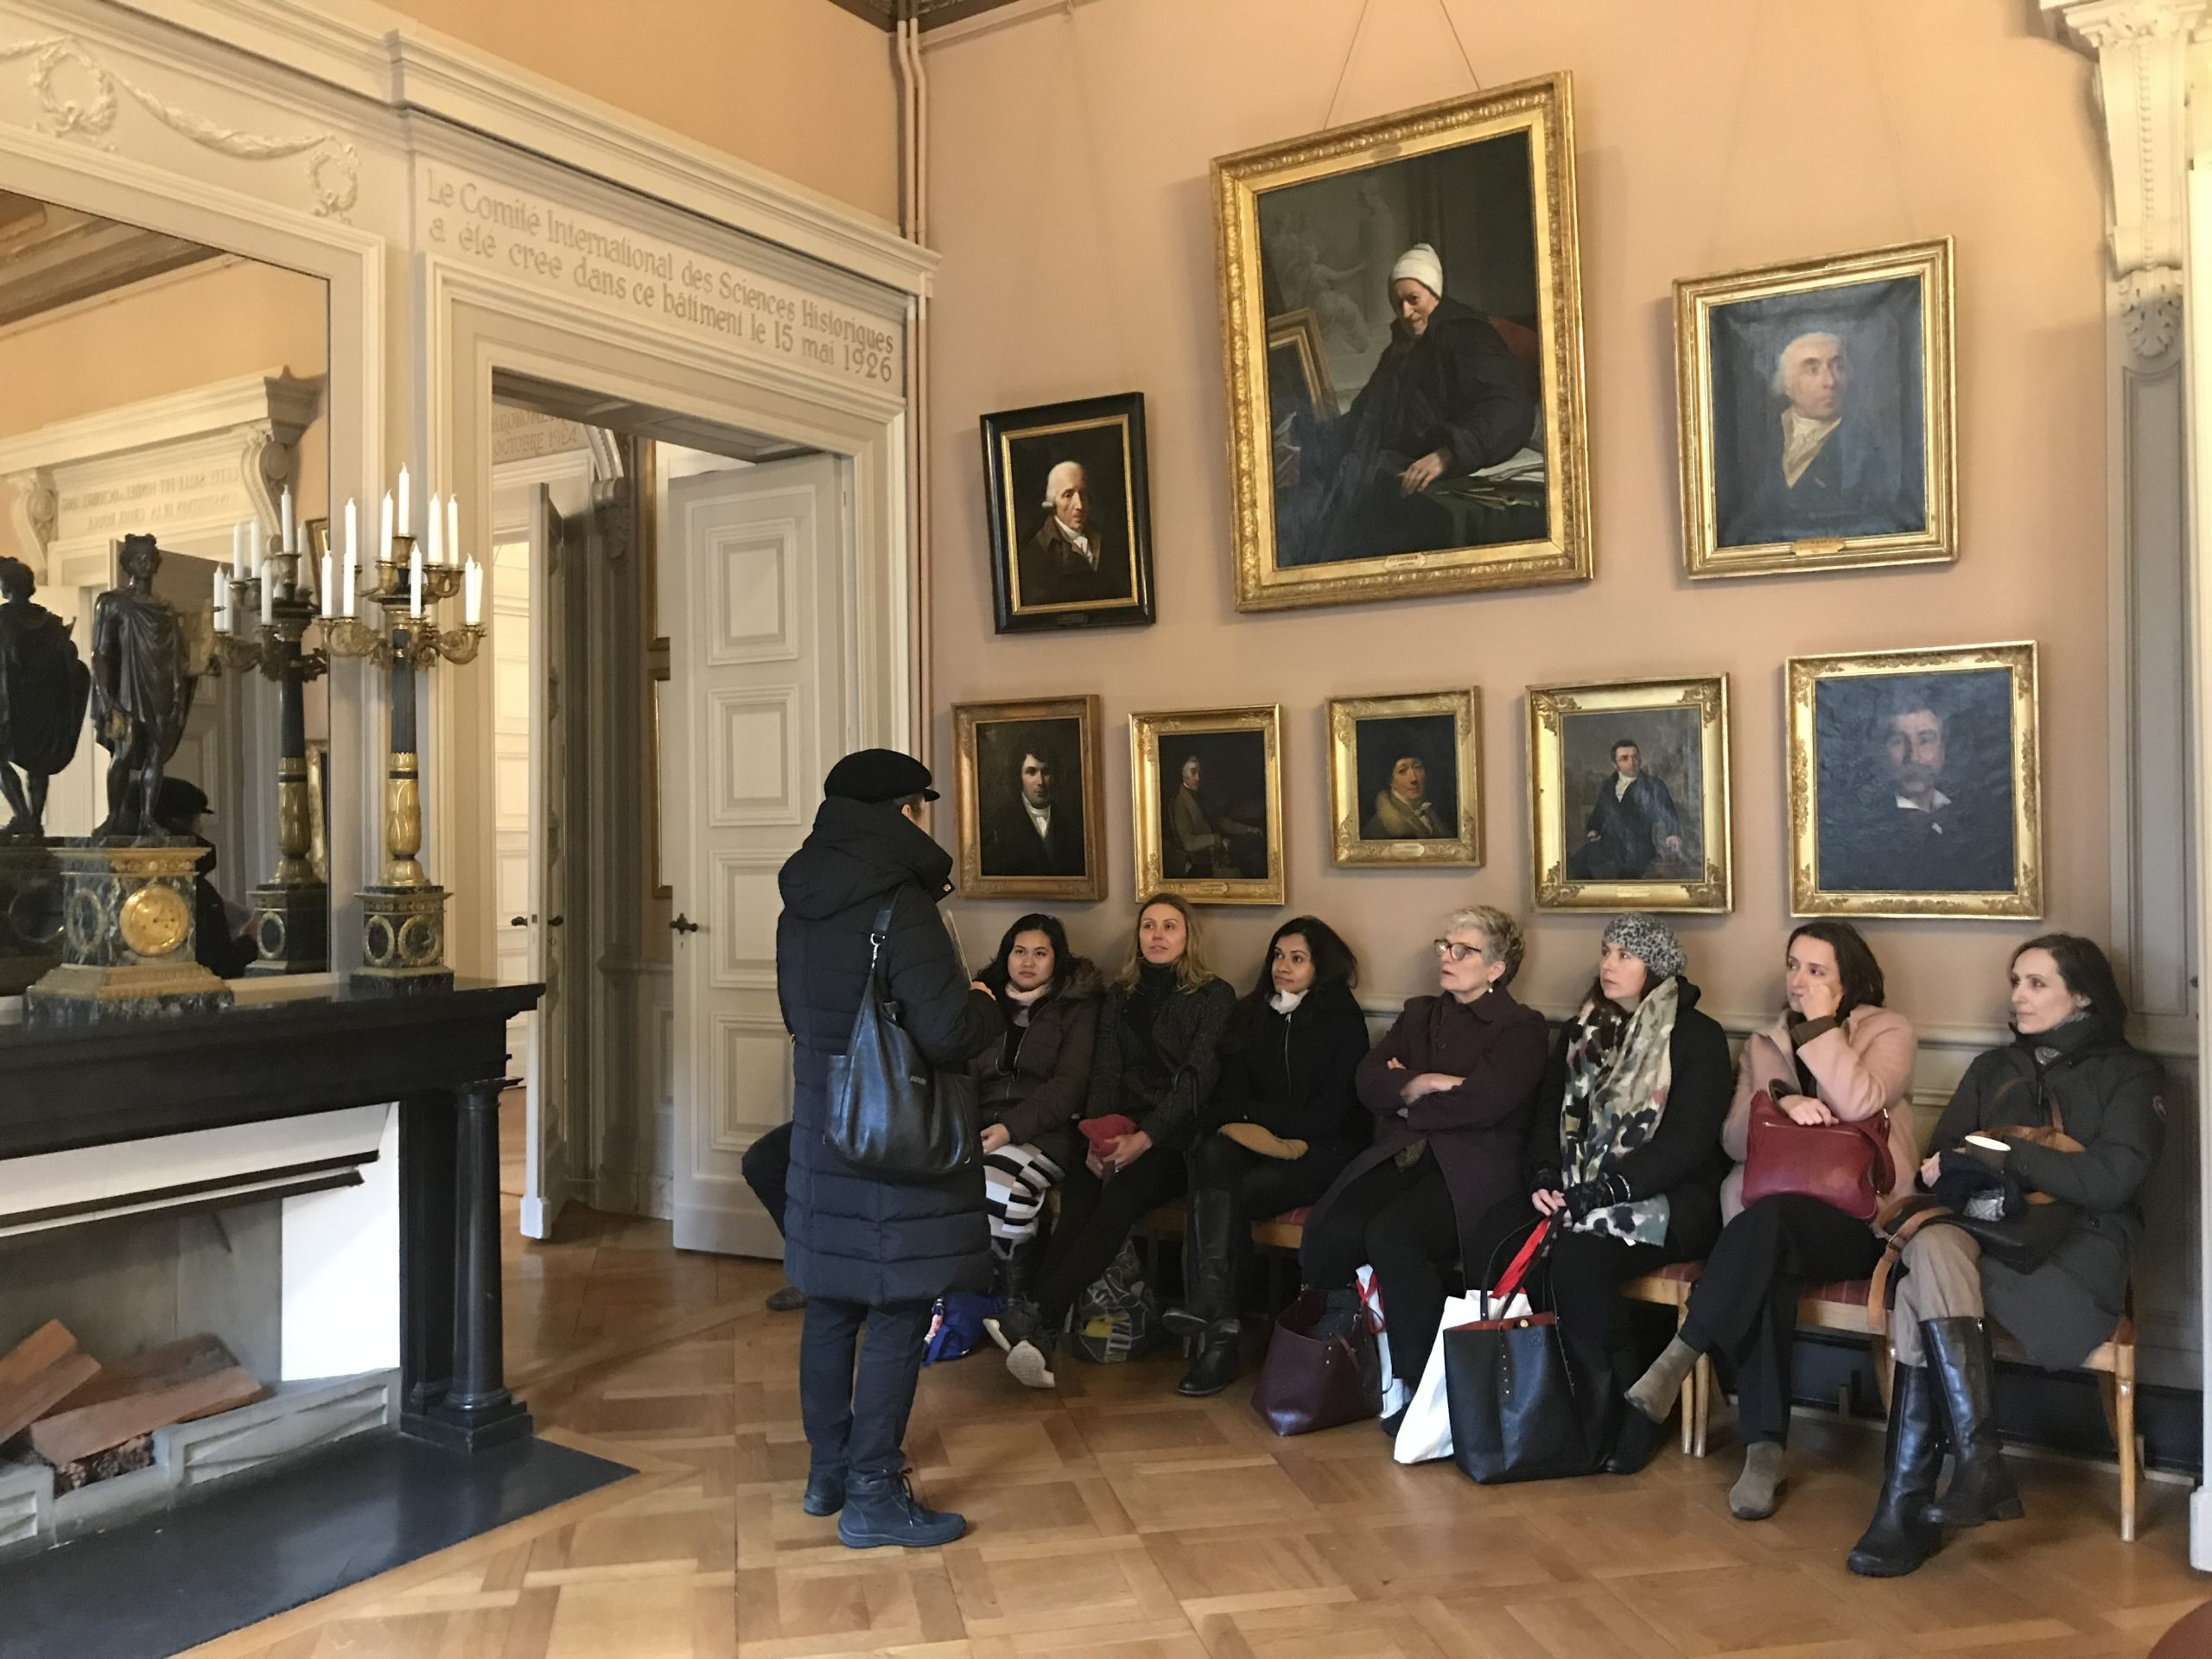 Visit of the Palais de l'Athénée 9 December 2019 - picture: Catherine Hubert-Girod